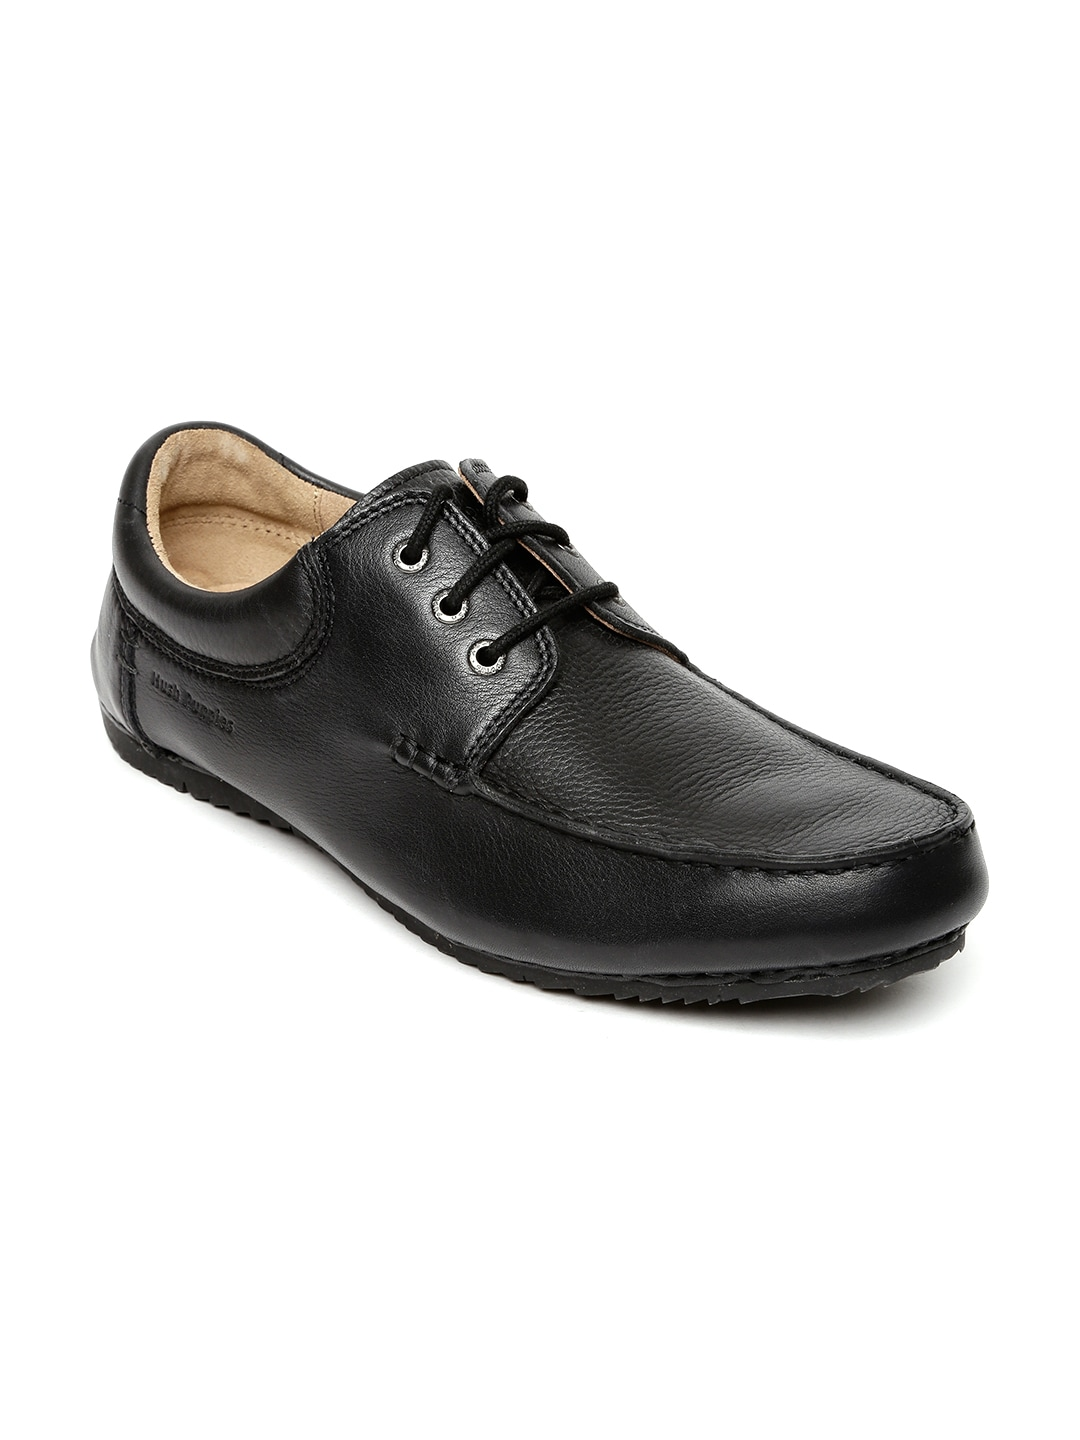 Hush Puppies Men Black Leather Derby Shoes image